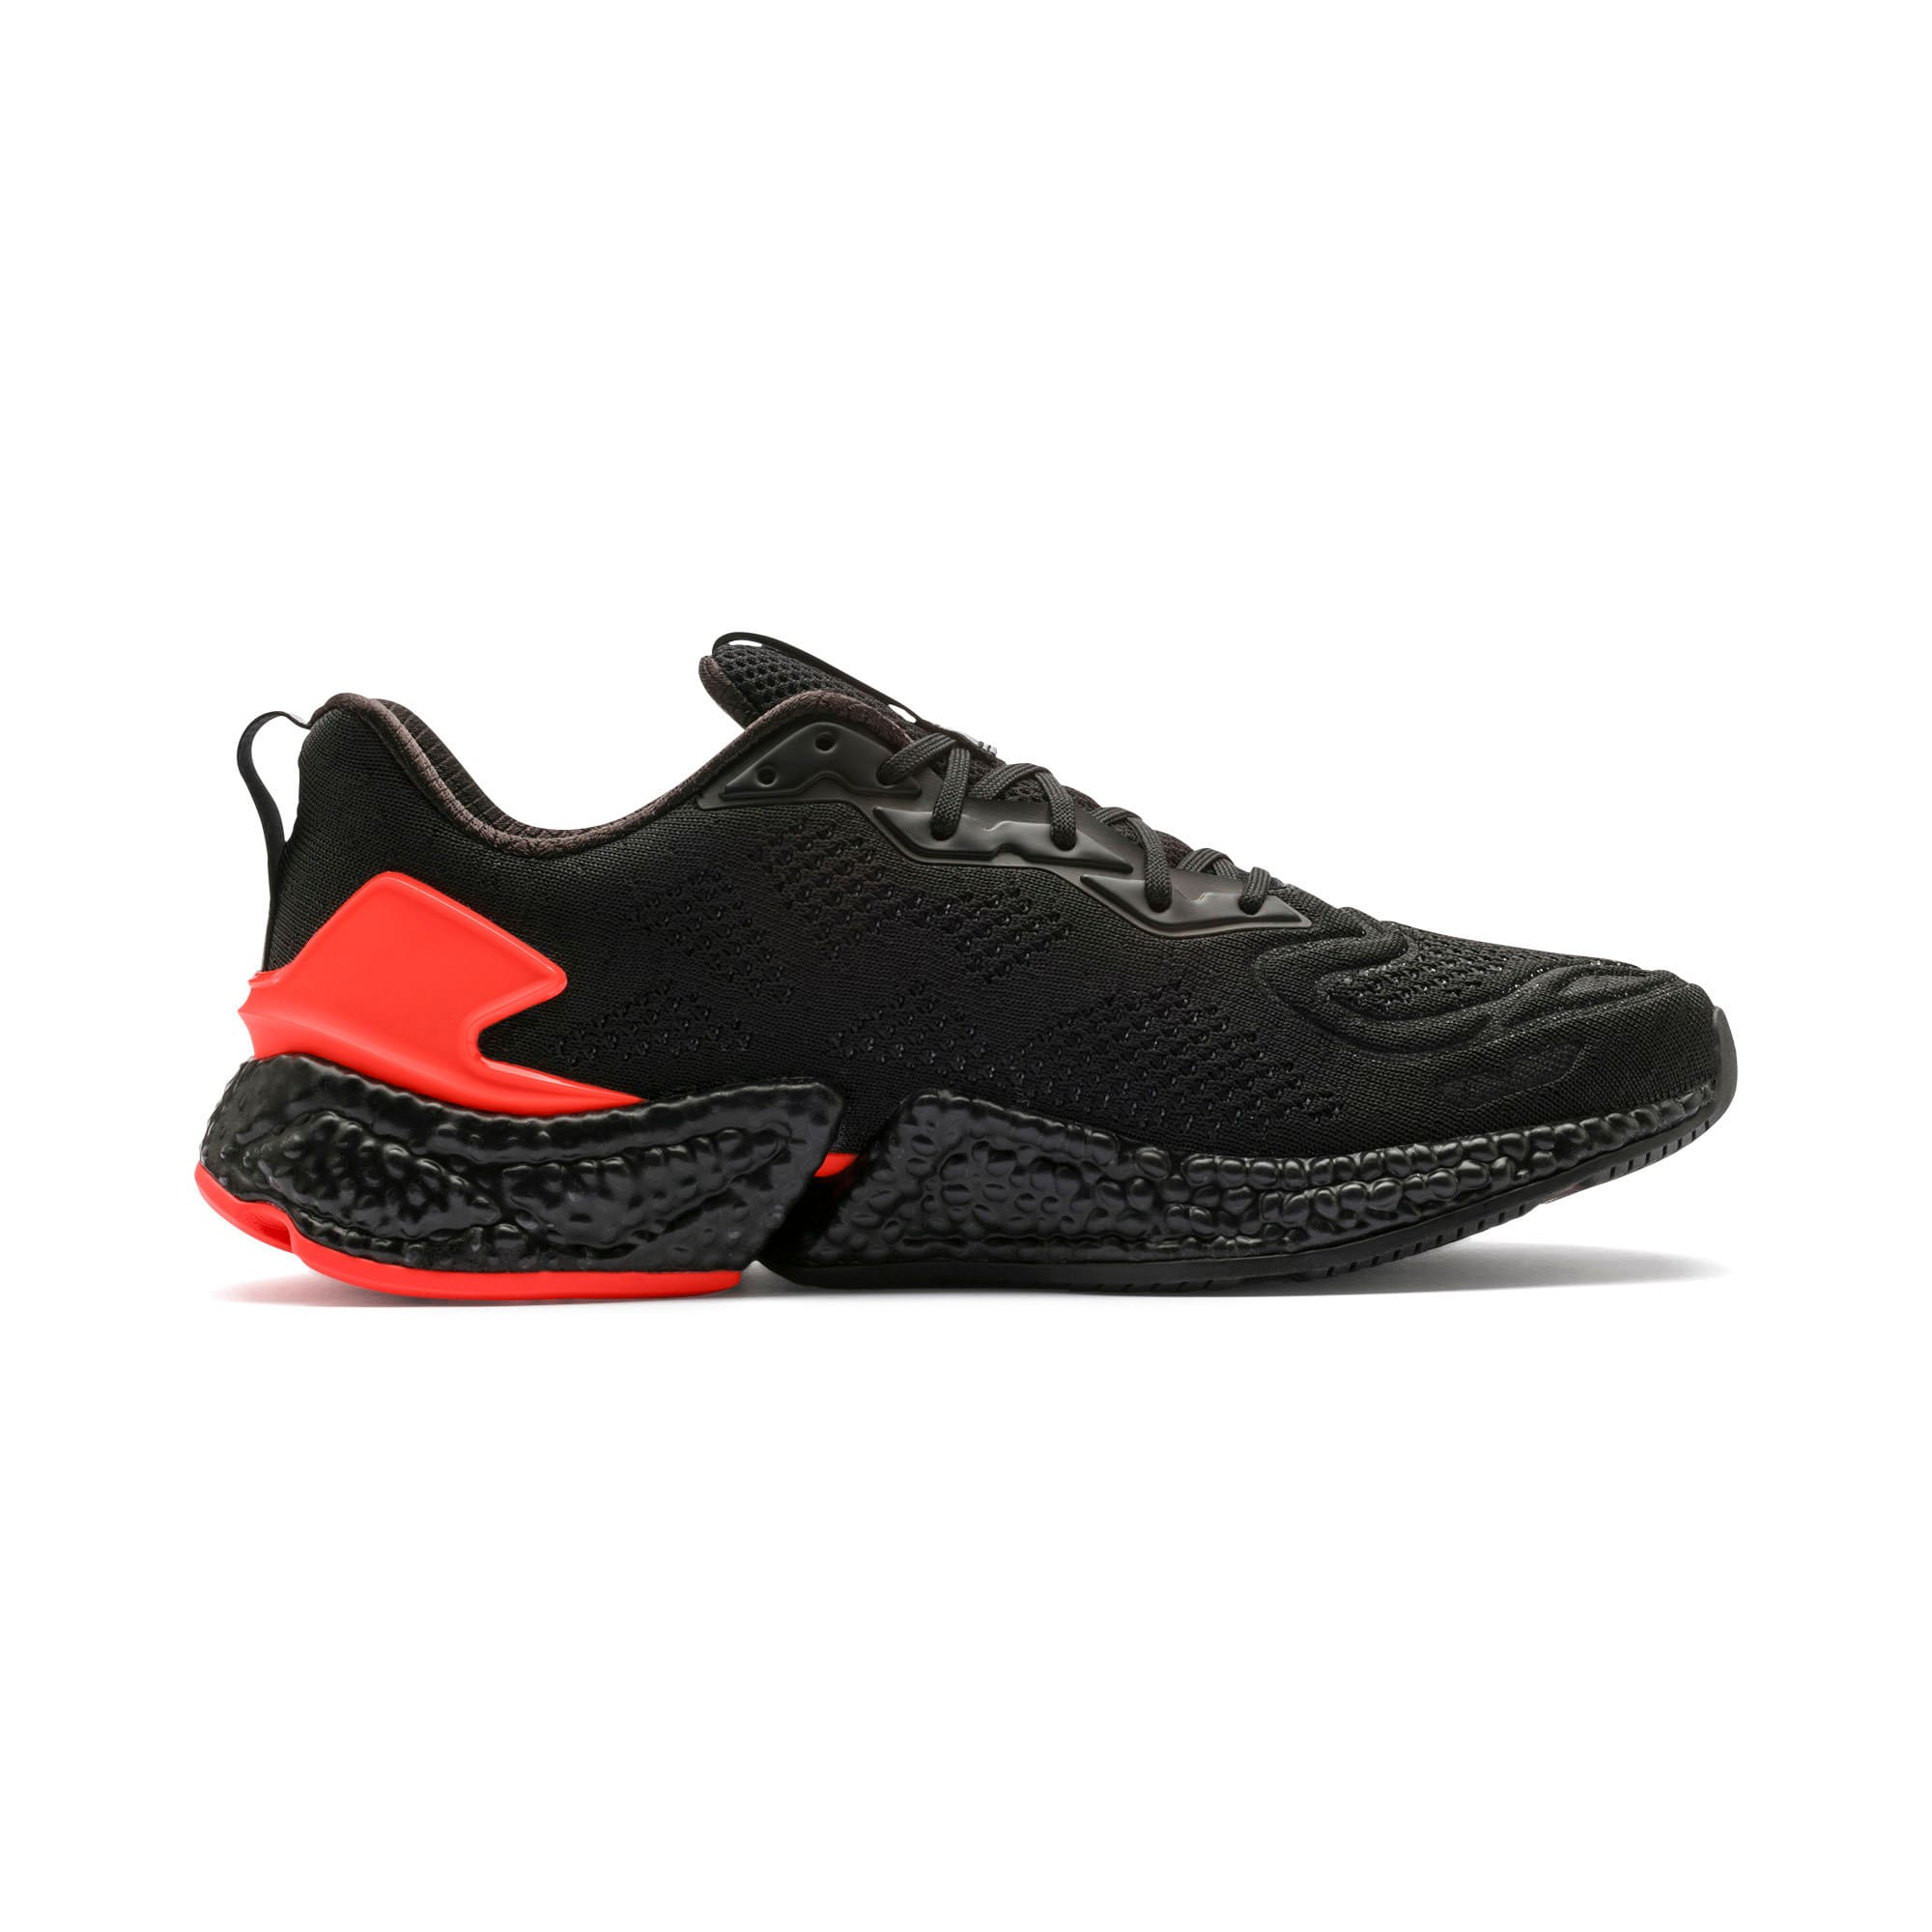 Thumbnail 7 of HYBRID SPEED Orbiter Men's Running Shoes, Black-Nrgy Red-Yellow, medium-IND